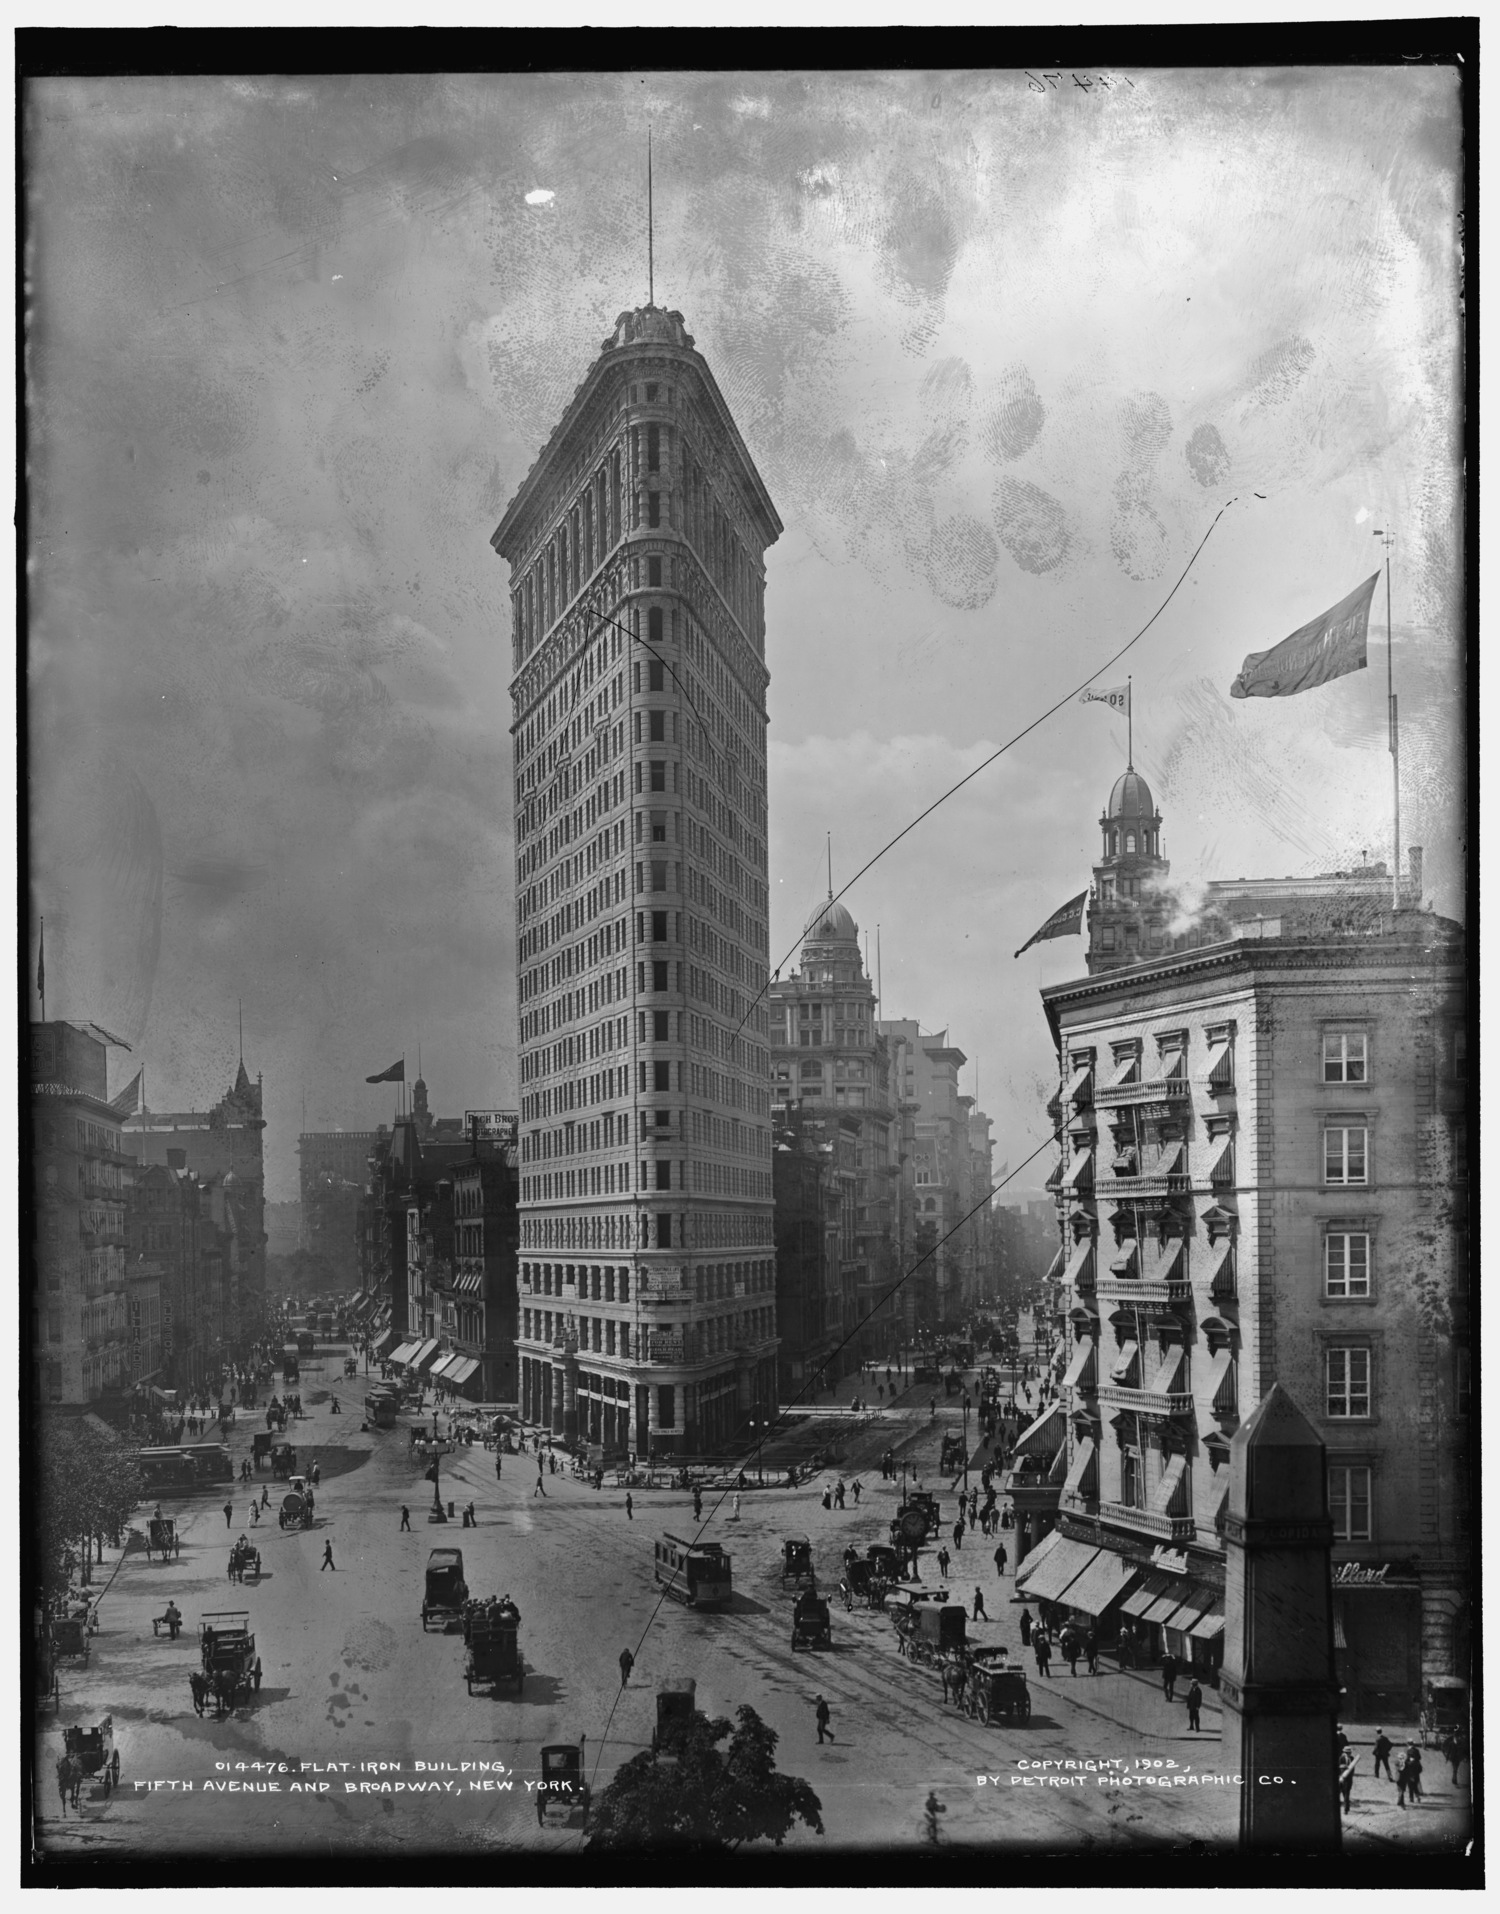 Flat-Iron [i.e. Flatiron] Building, Fifth Avenue and Broadway, New York, 1902